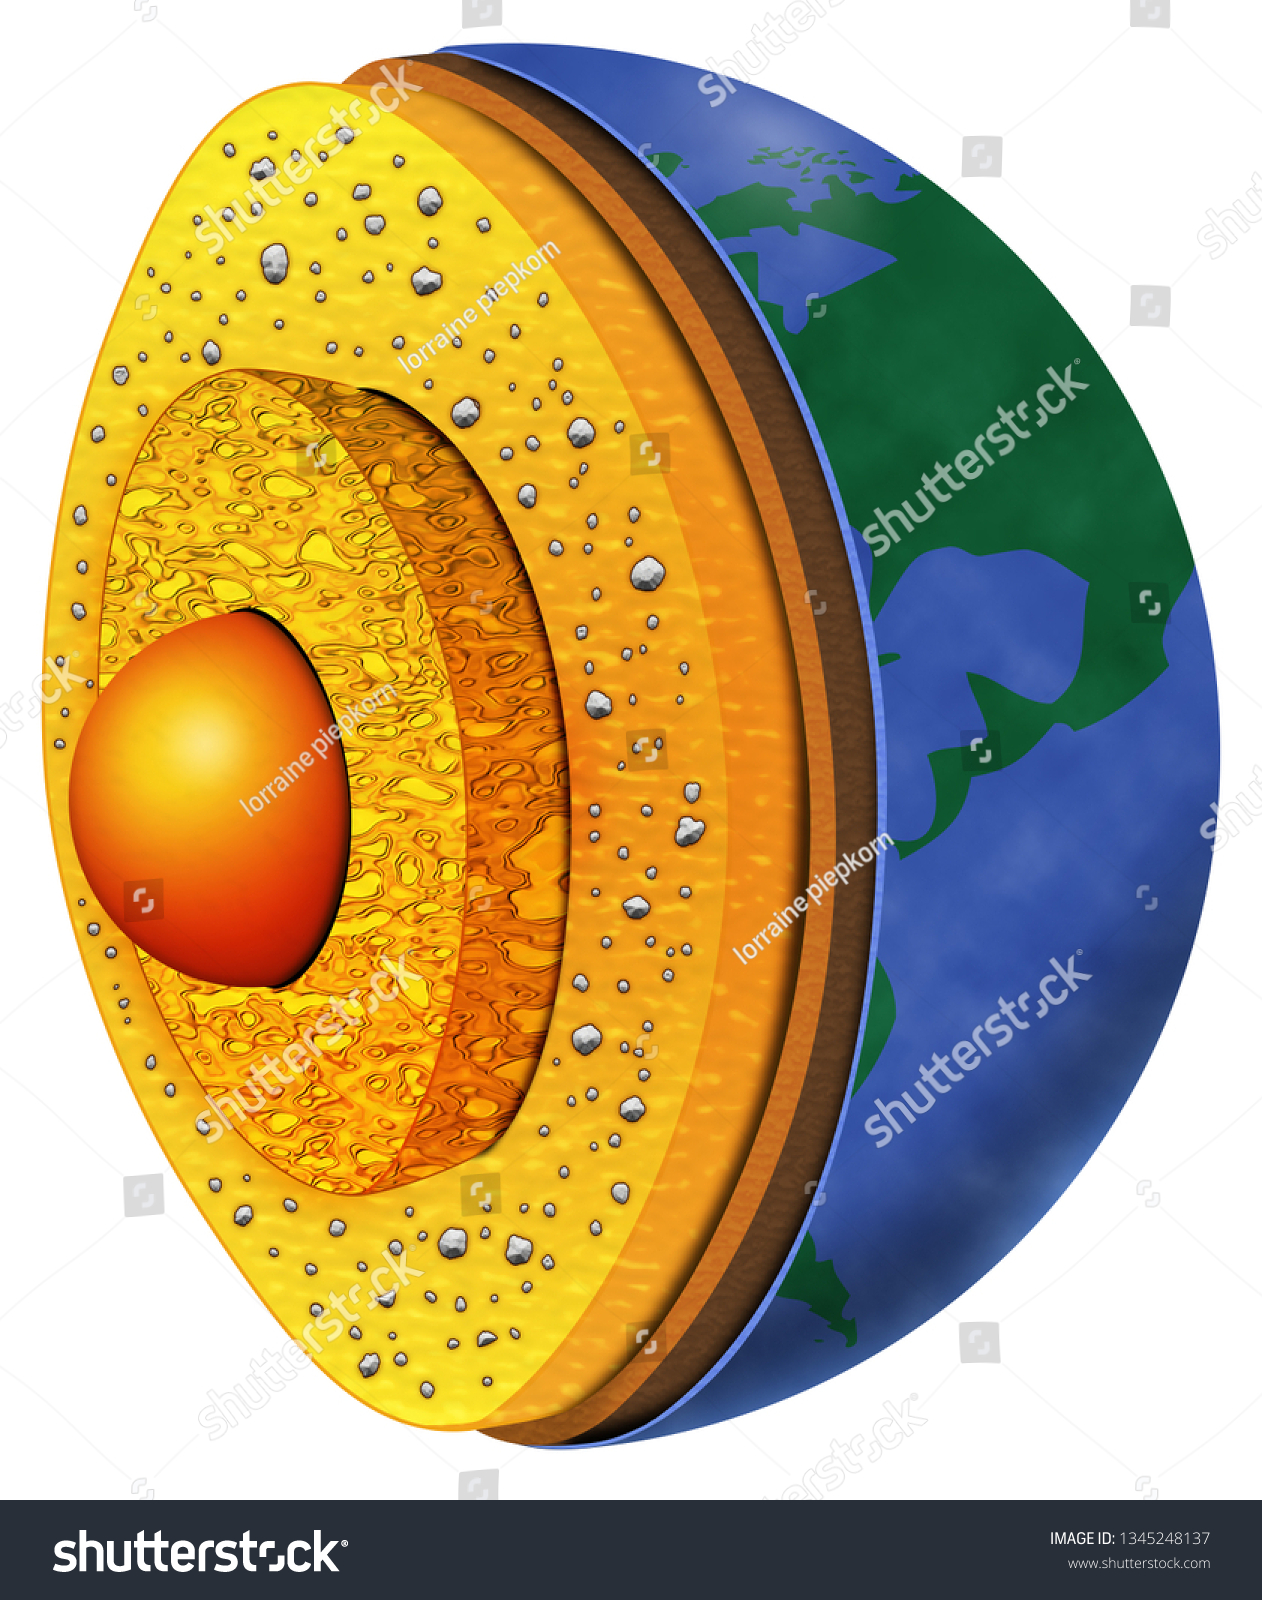 hight resolution of diagram of earth s layers inner core outer core mantle